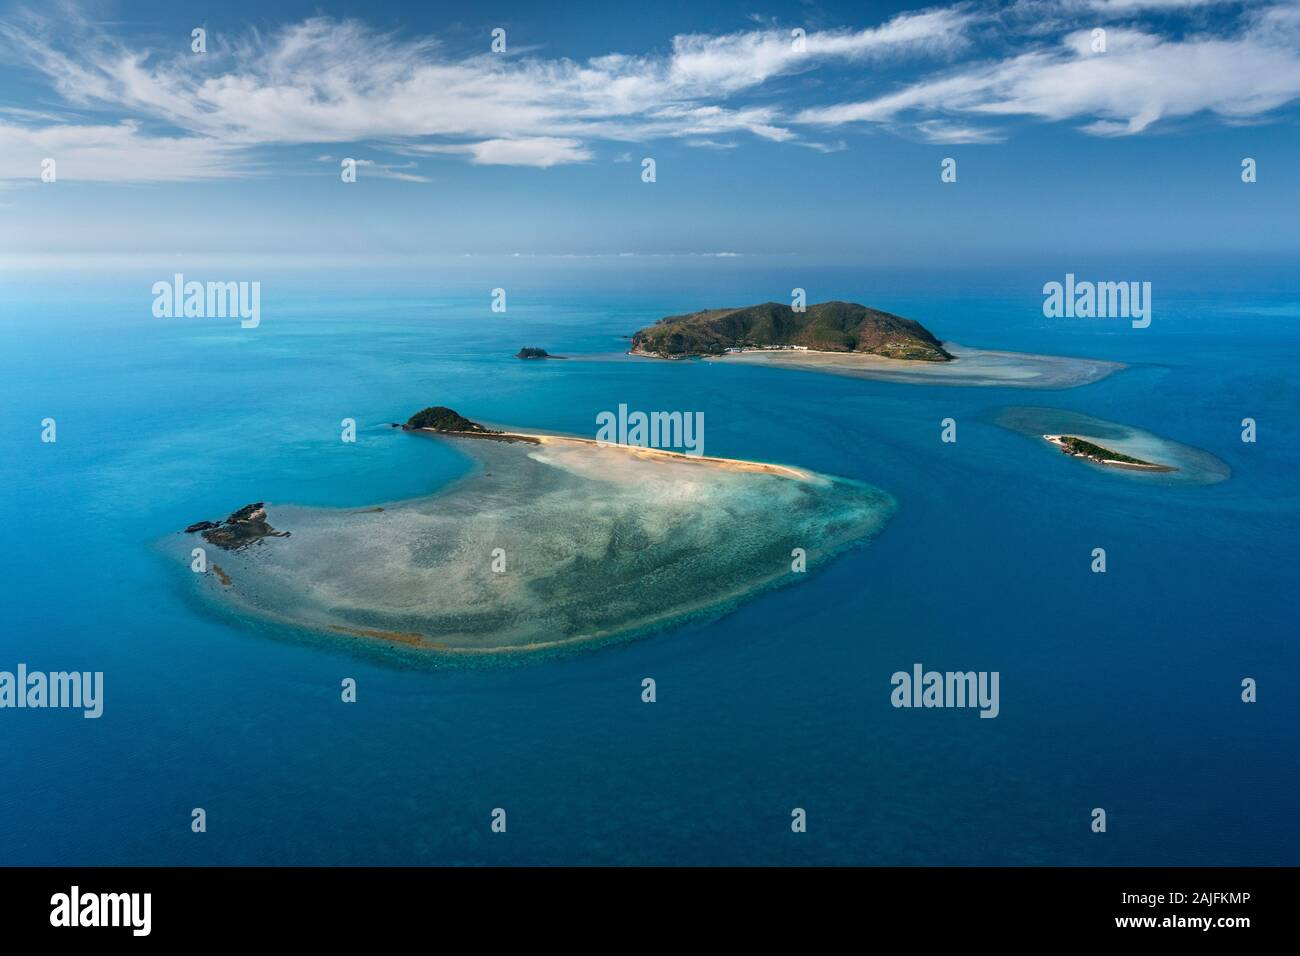 Aerial of Hayman Island, part of the famous Whitsunday Islands. Stock Photo